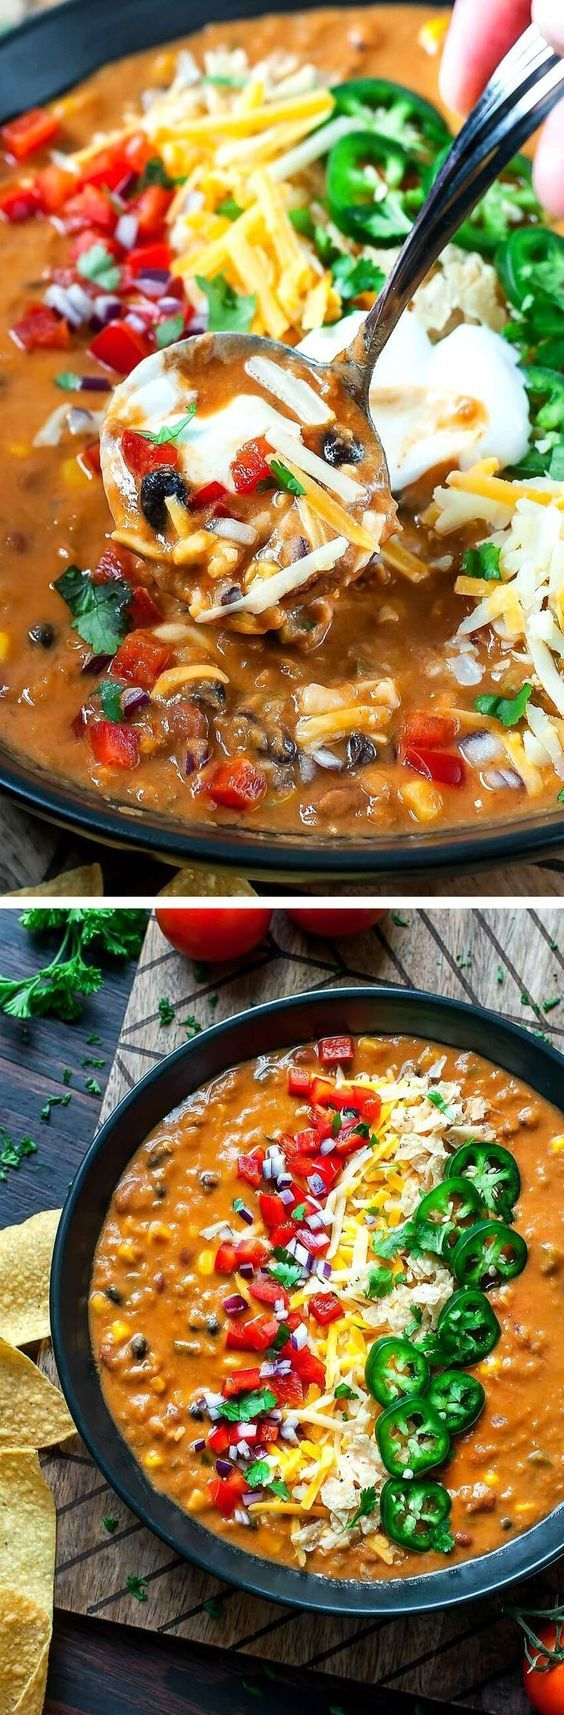 Easy and crazy flavorful soup (Tortilla Soup Recipes)